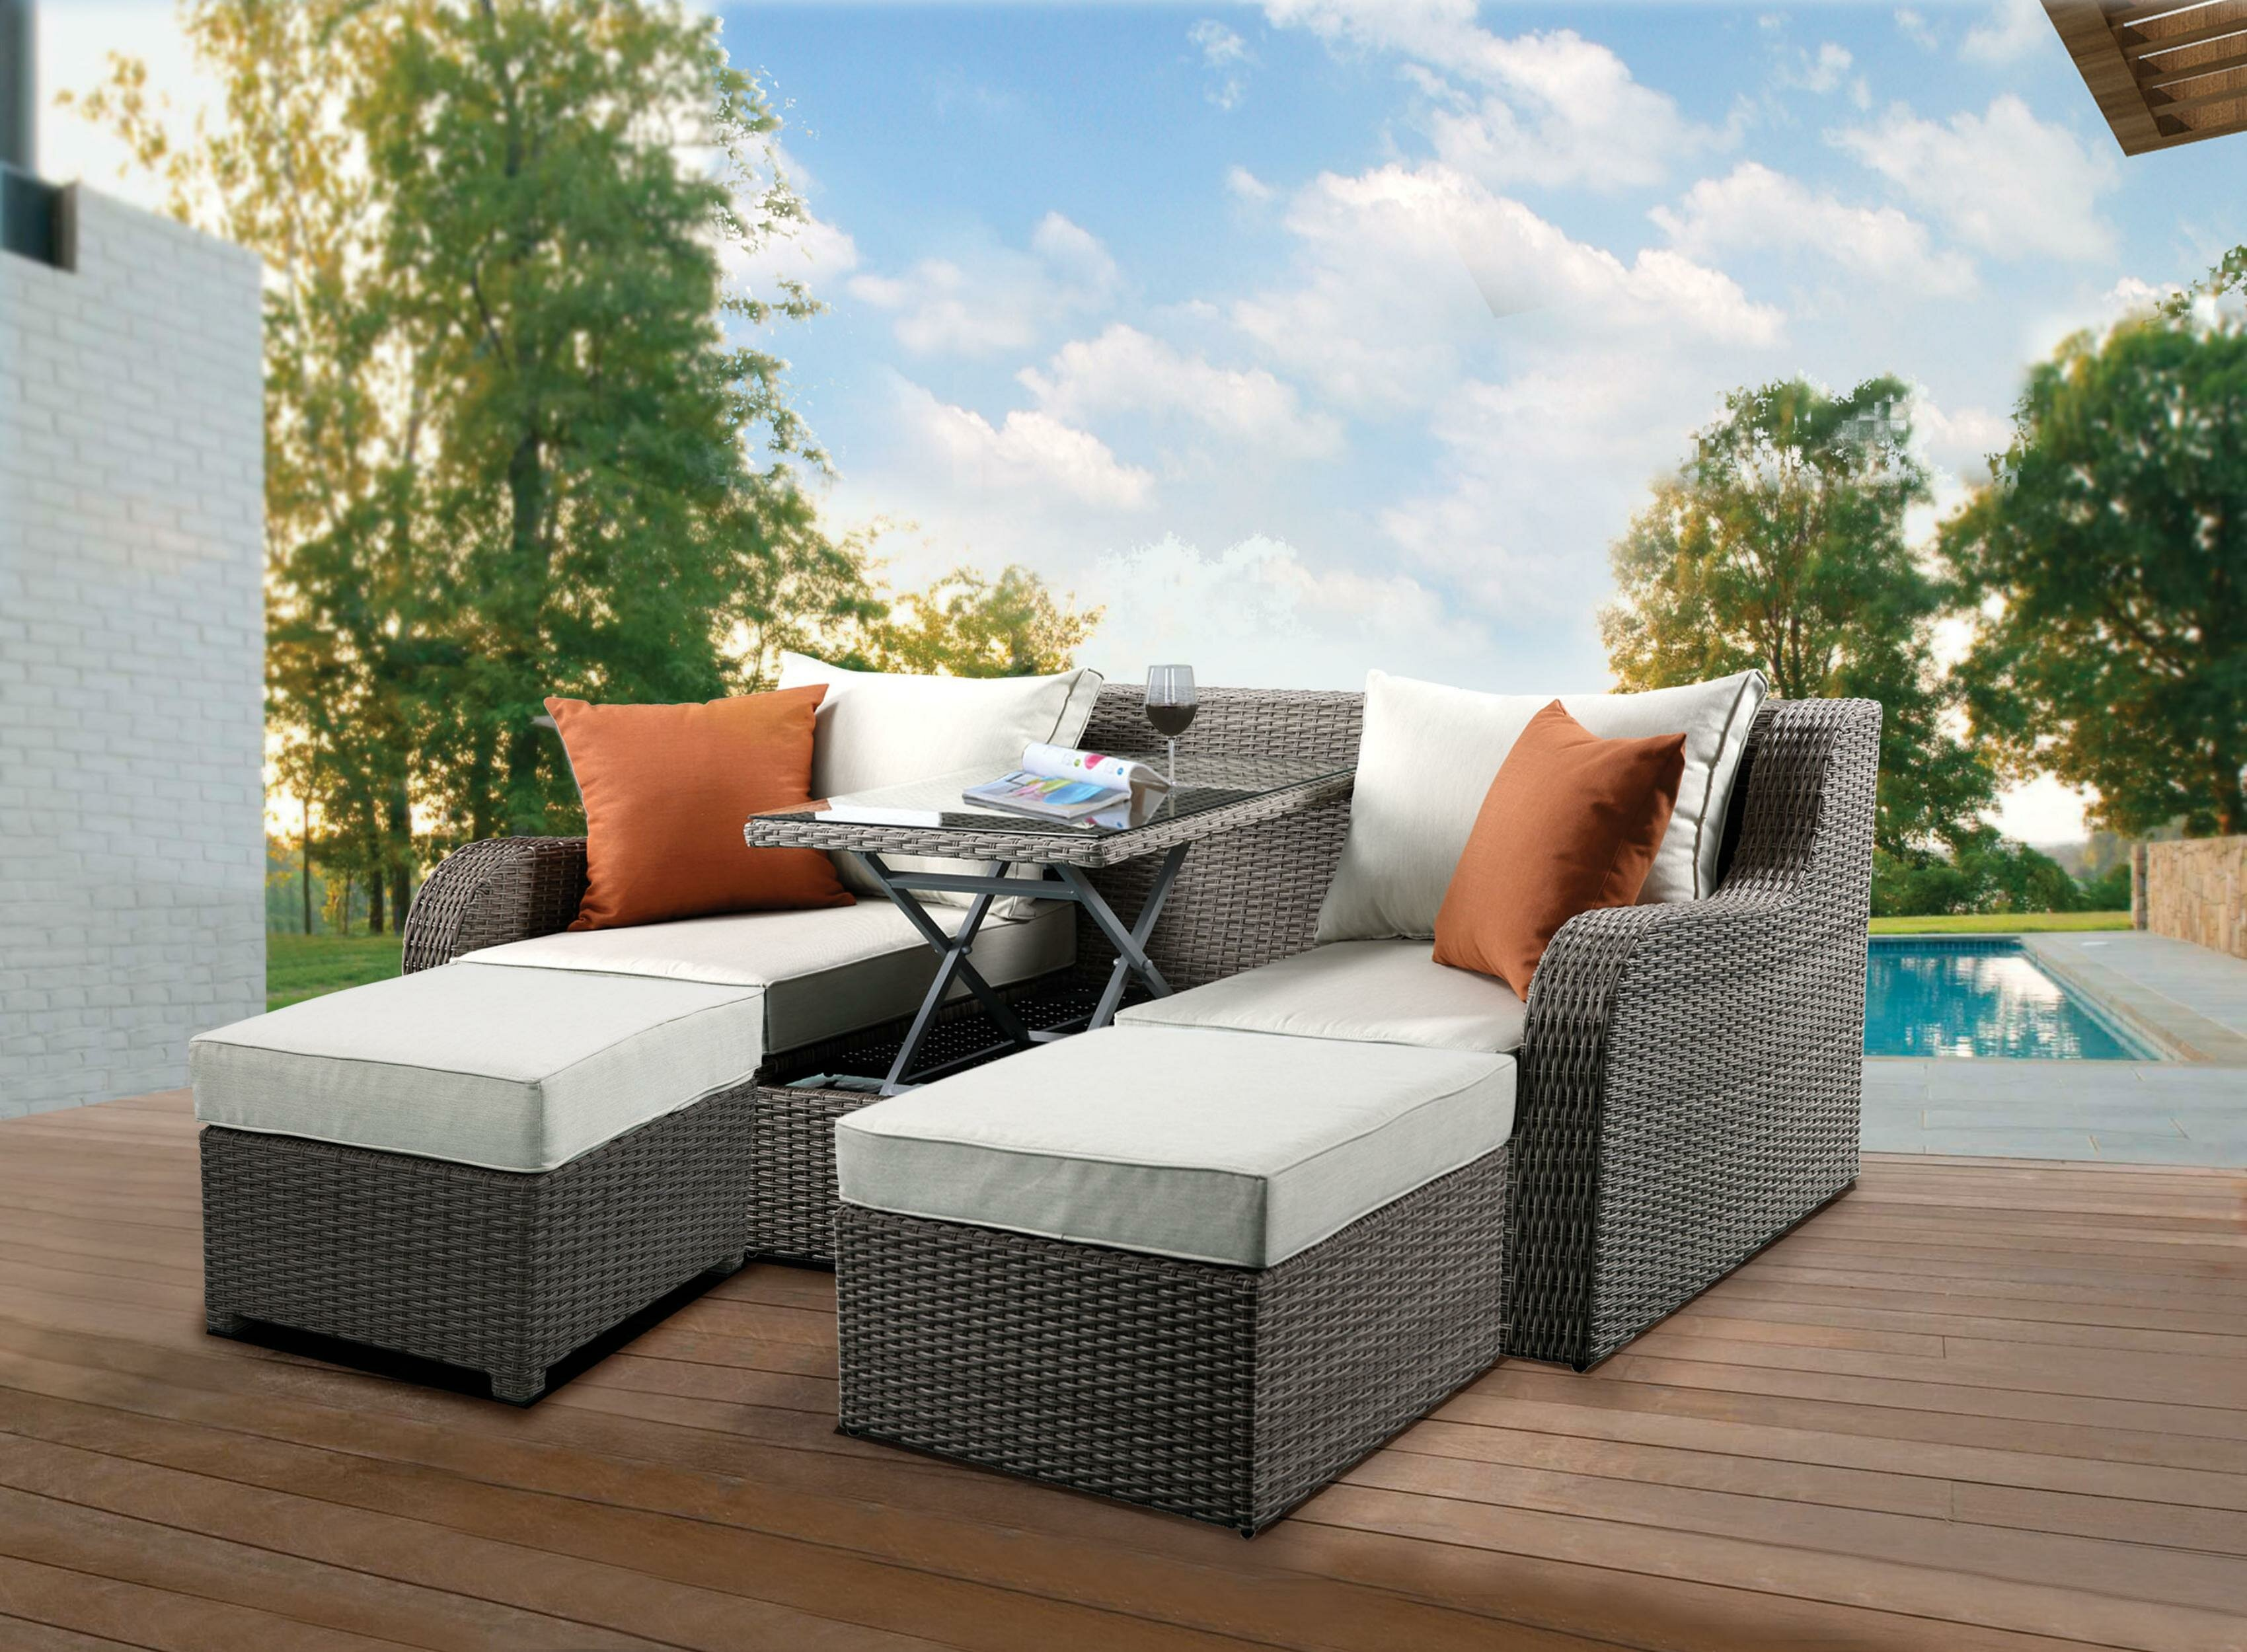 Prime Resin Wicker And Metal Patio Convertible Sofa With Two Ottomans Beige And Grey Set Of Three Spiritservingveterans Wood Chair Design Ideas Spiritservingveteransorg